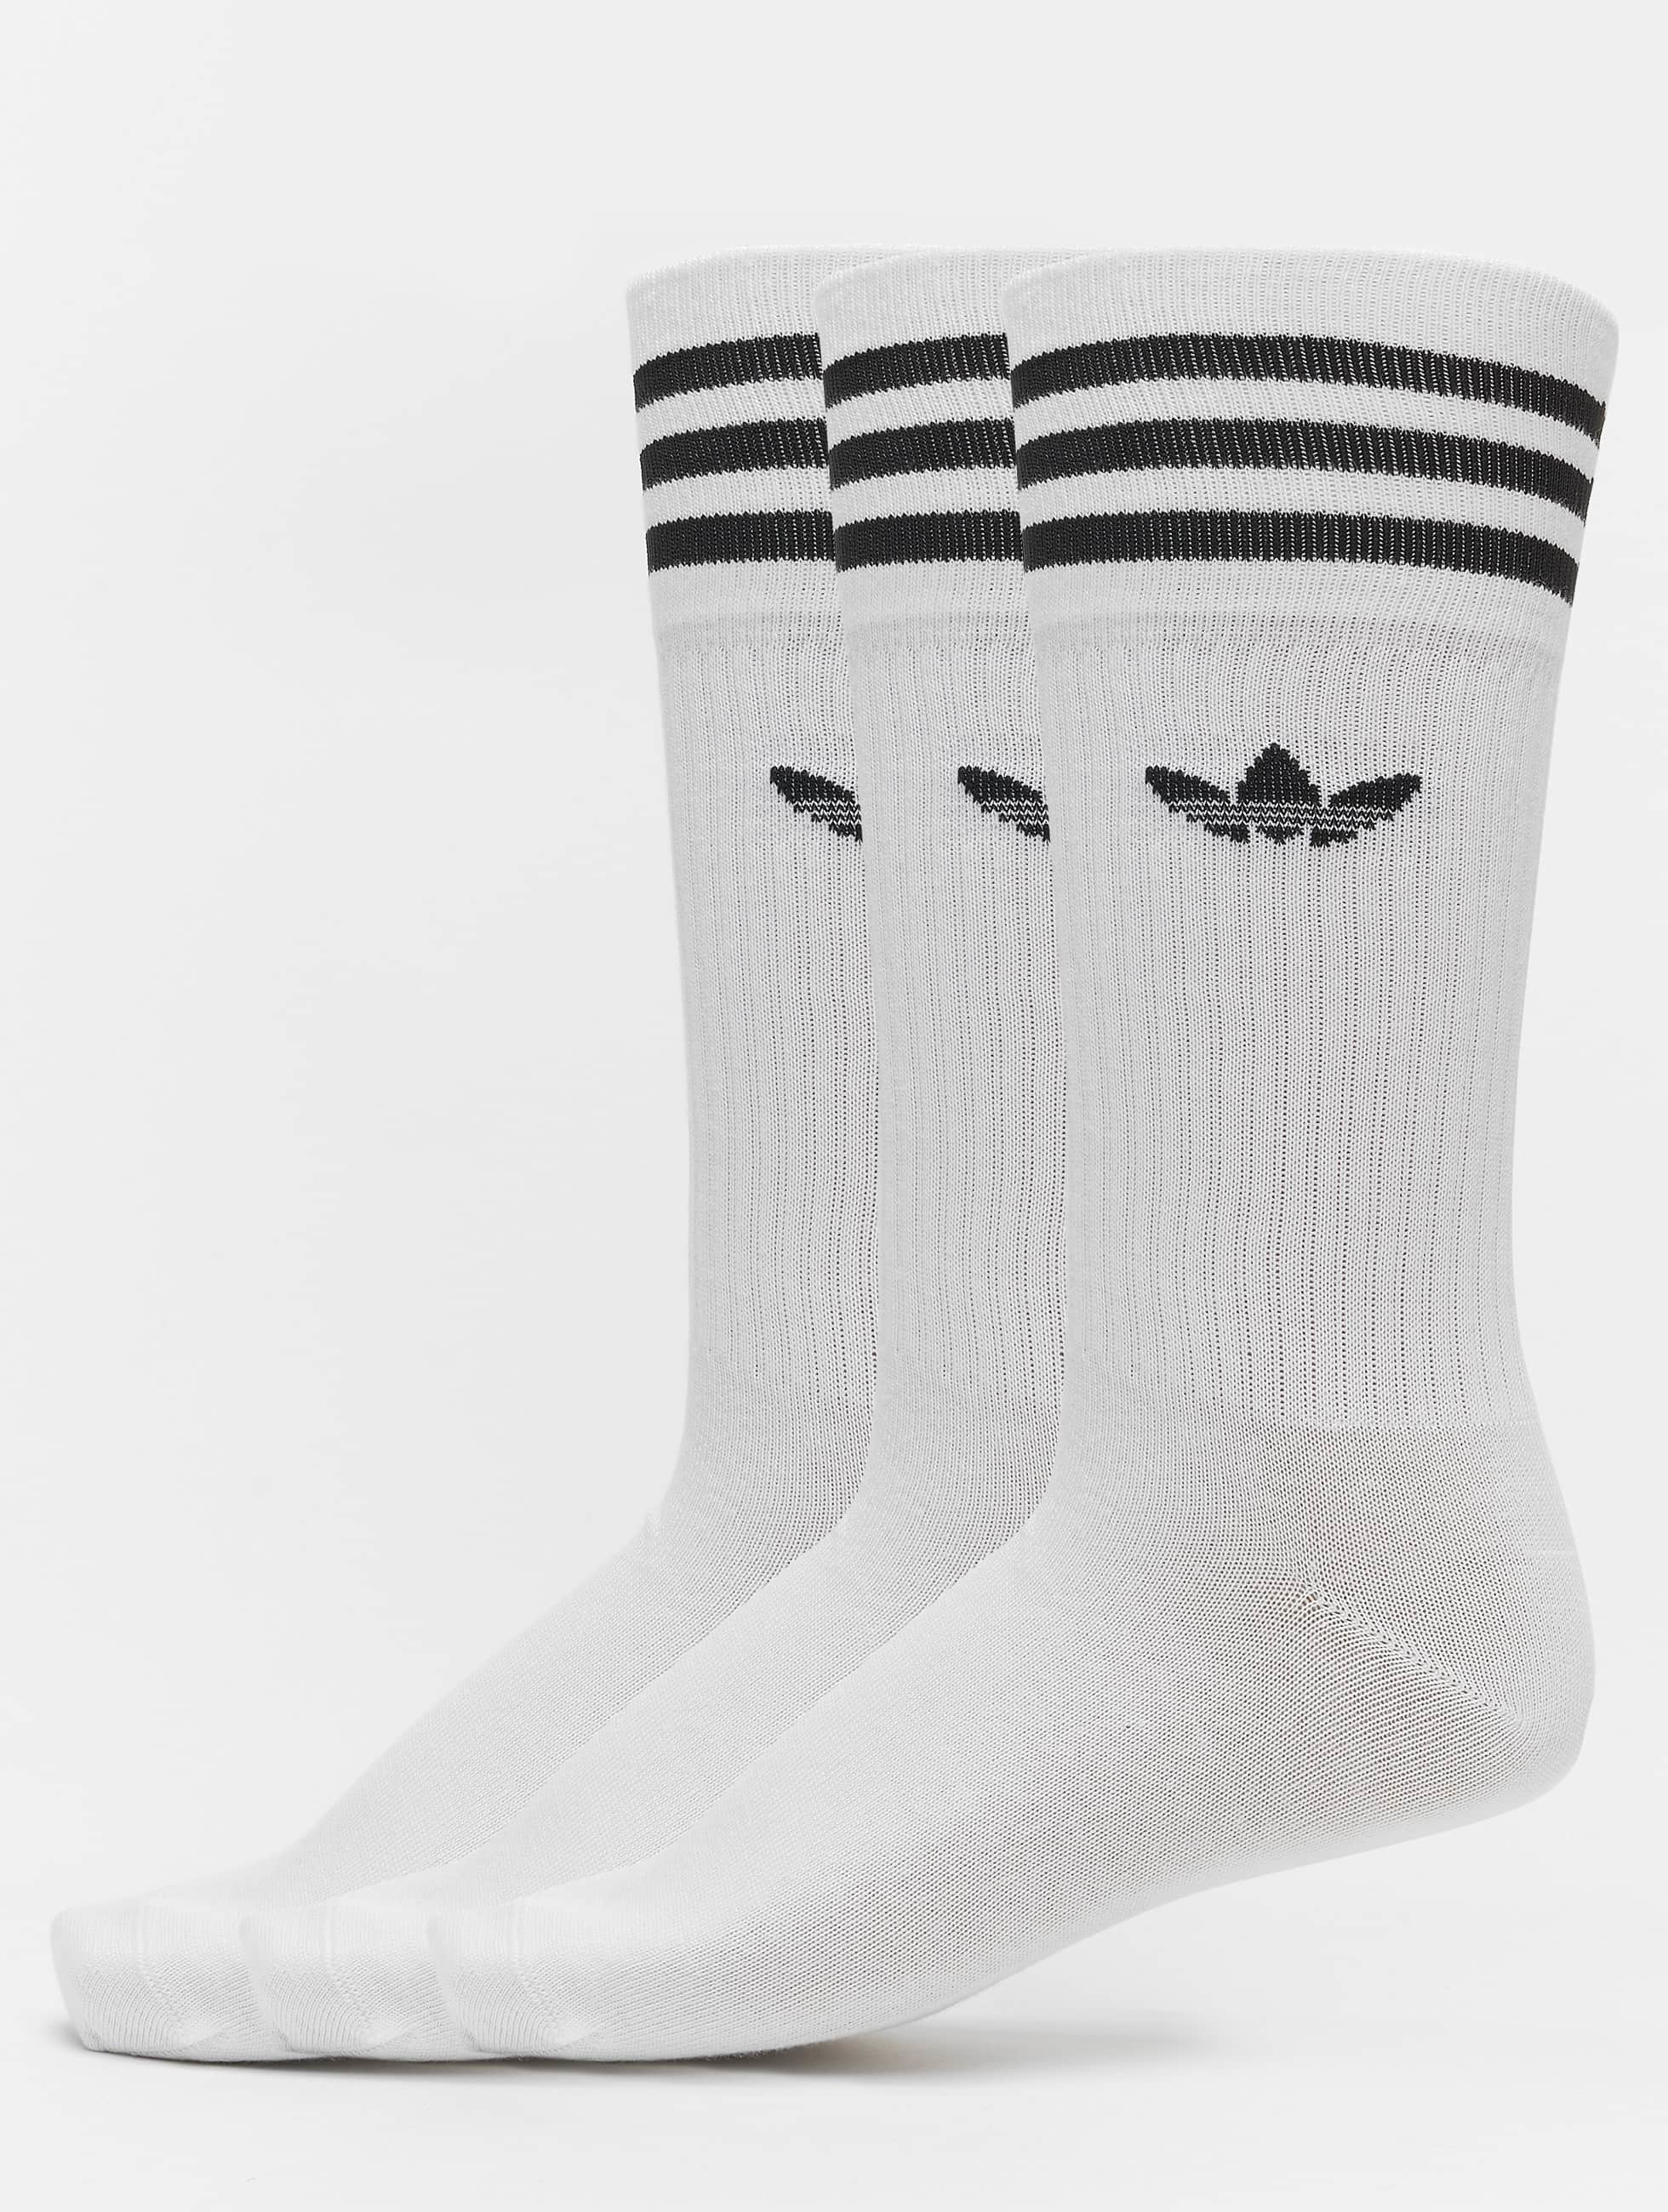 adidas originals Solid Crew Socks White